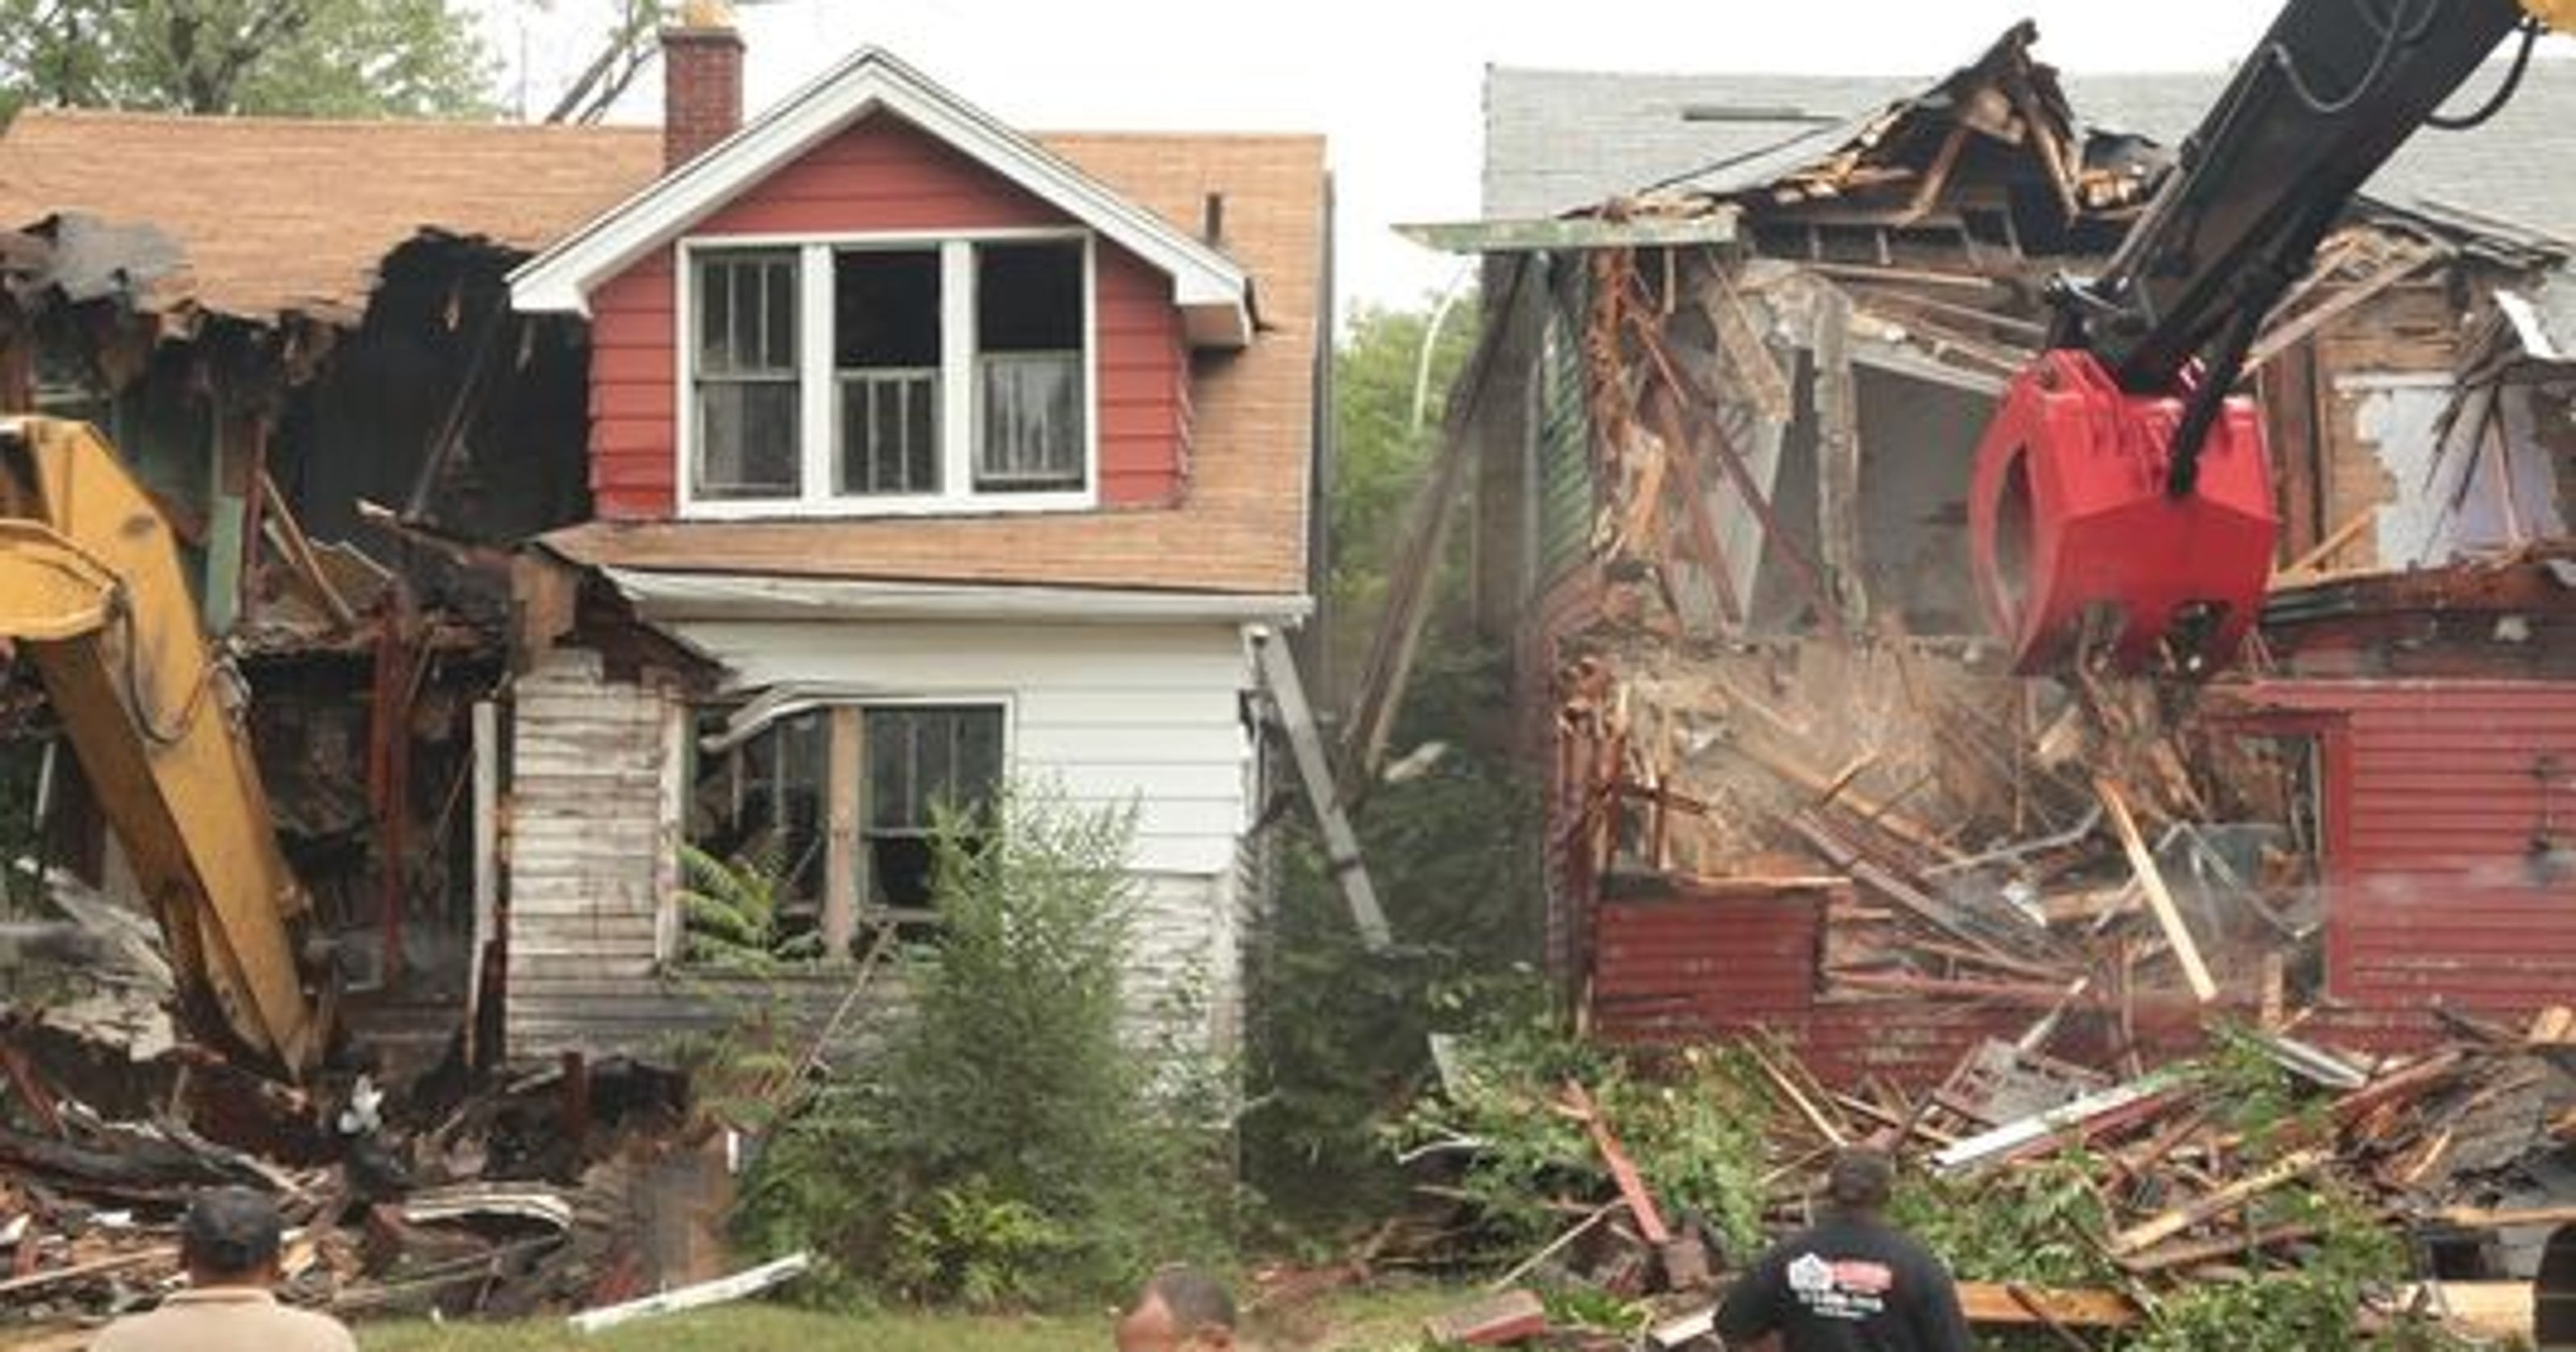 Detroit to get an additional $88M for blight removal